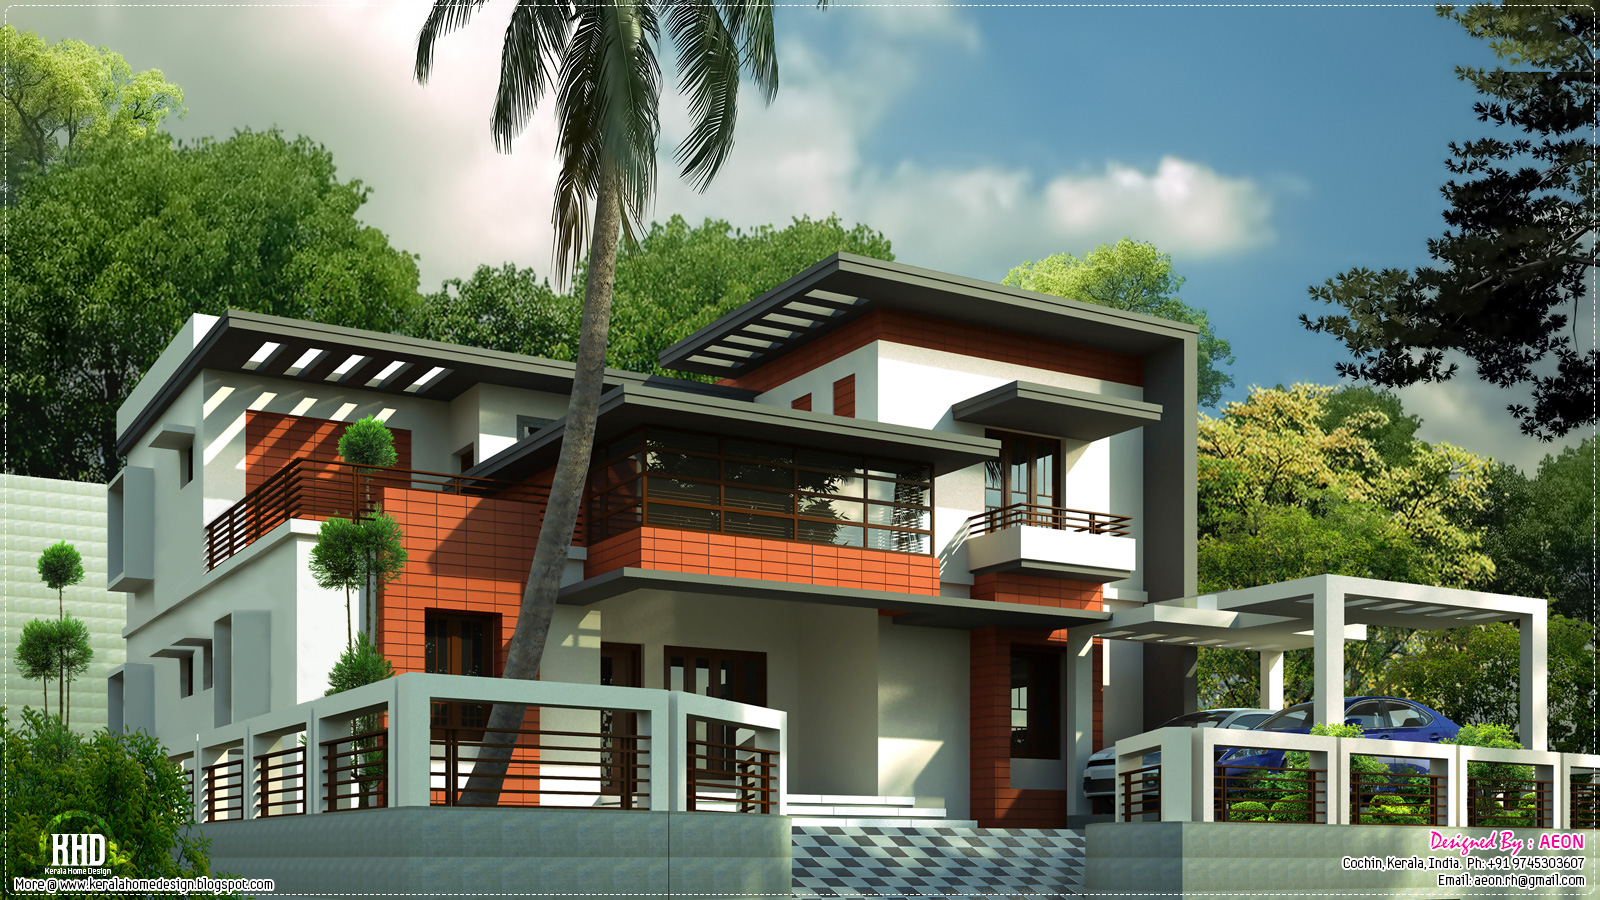 3400 sq feet contemporary home design kerala home design and floor plans - Contemporary house designs ...